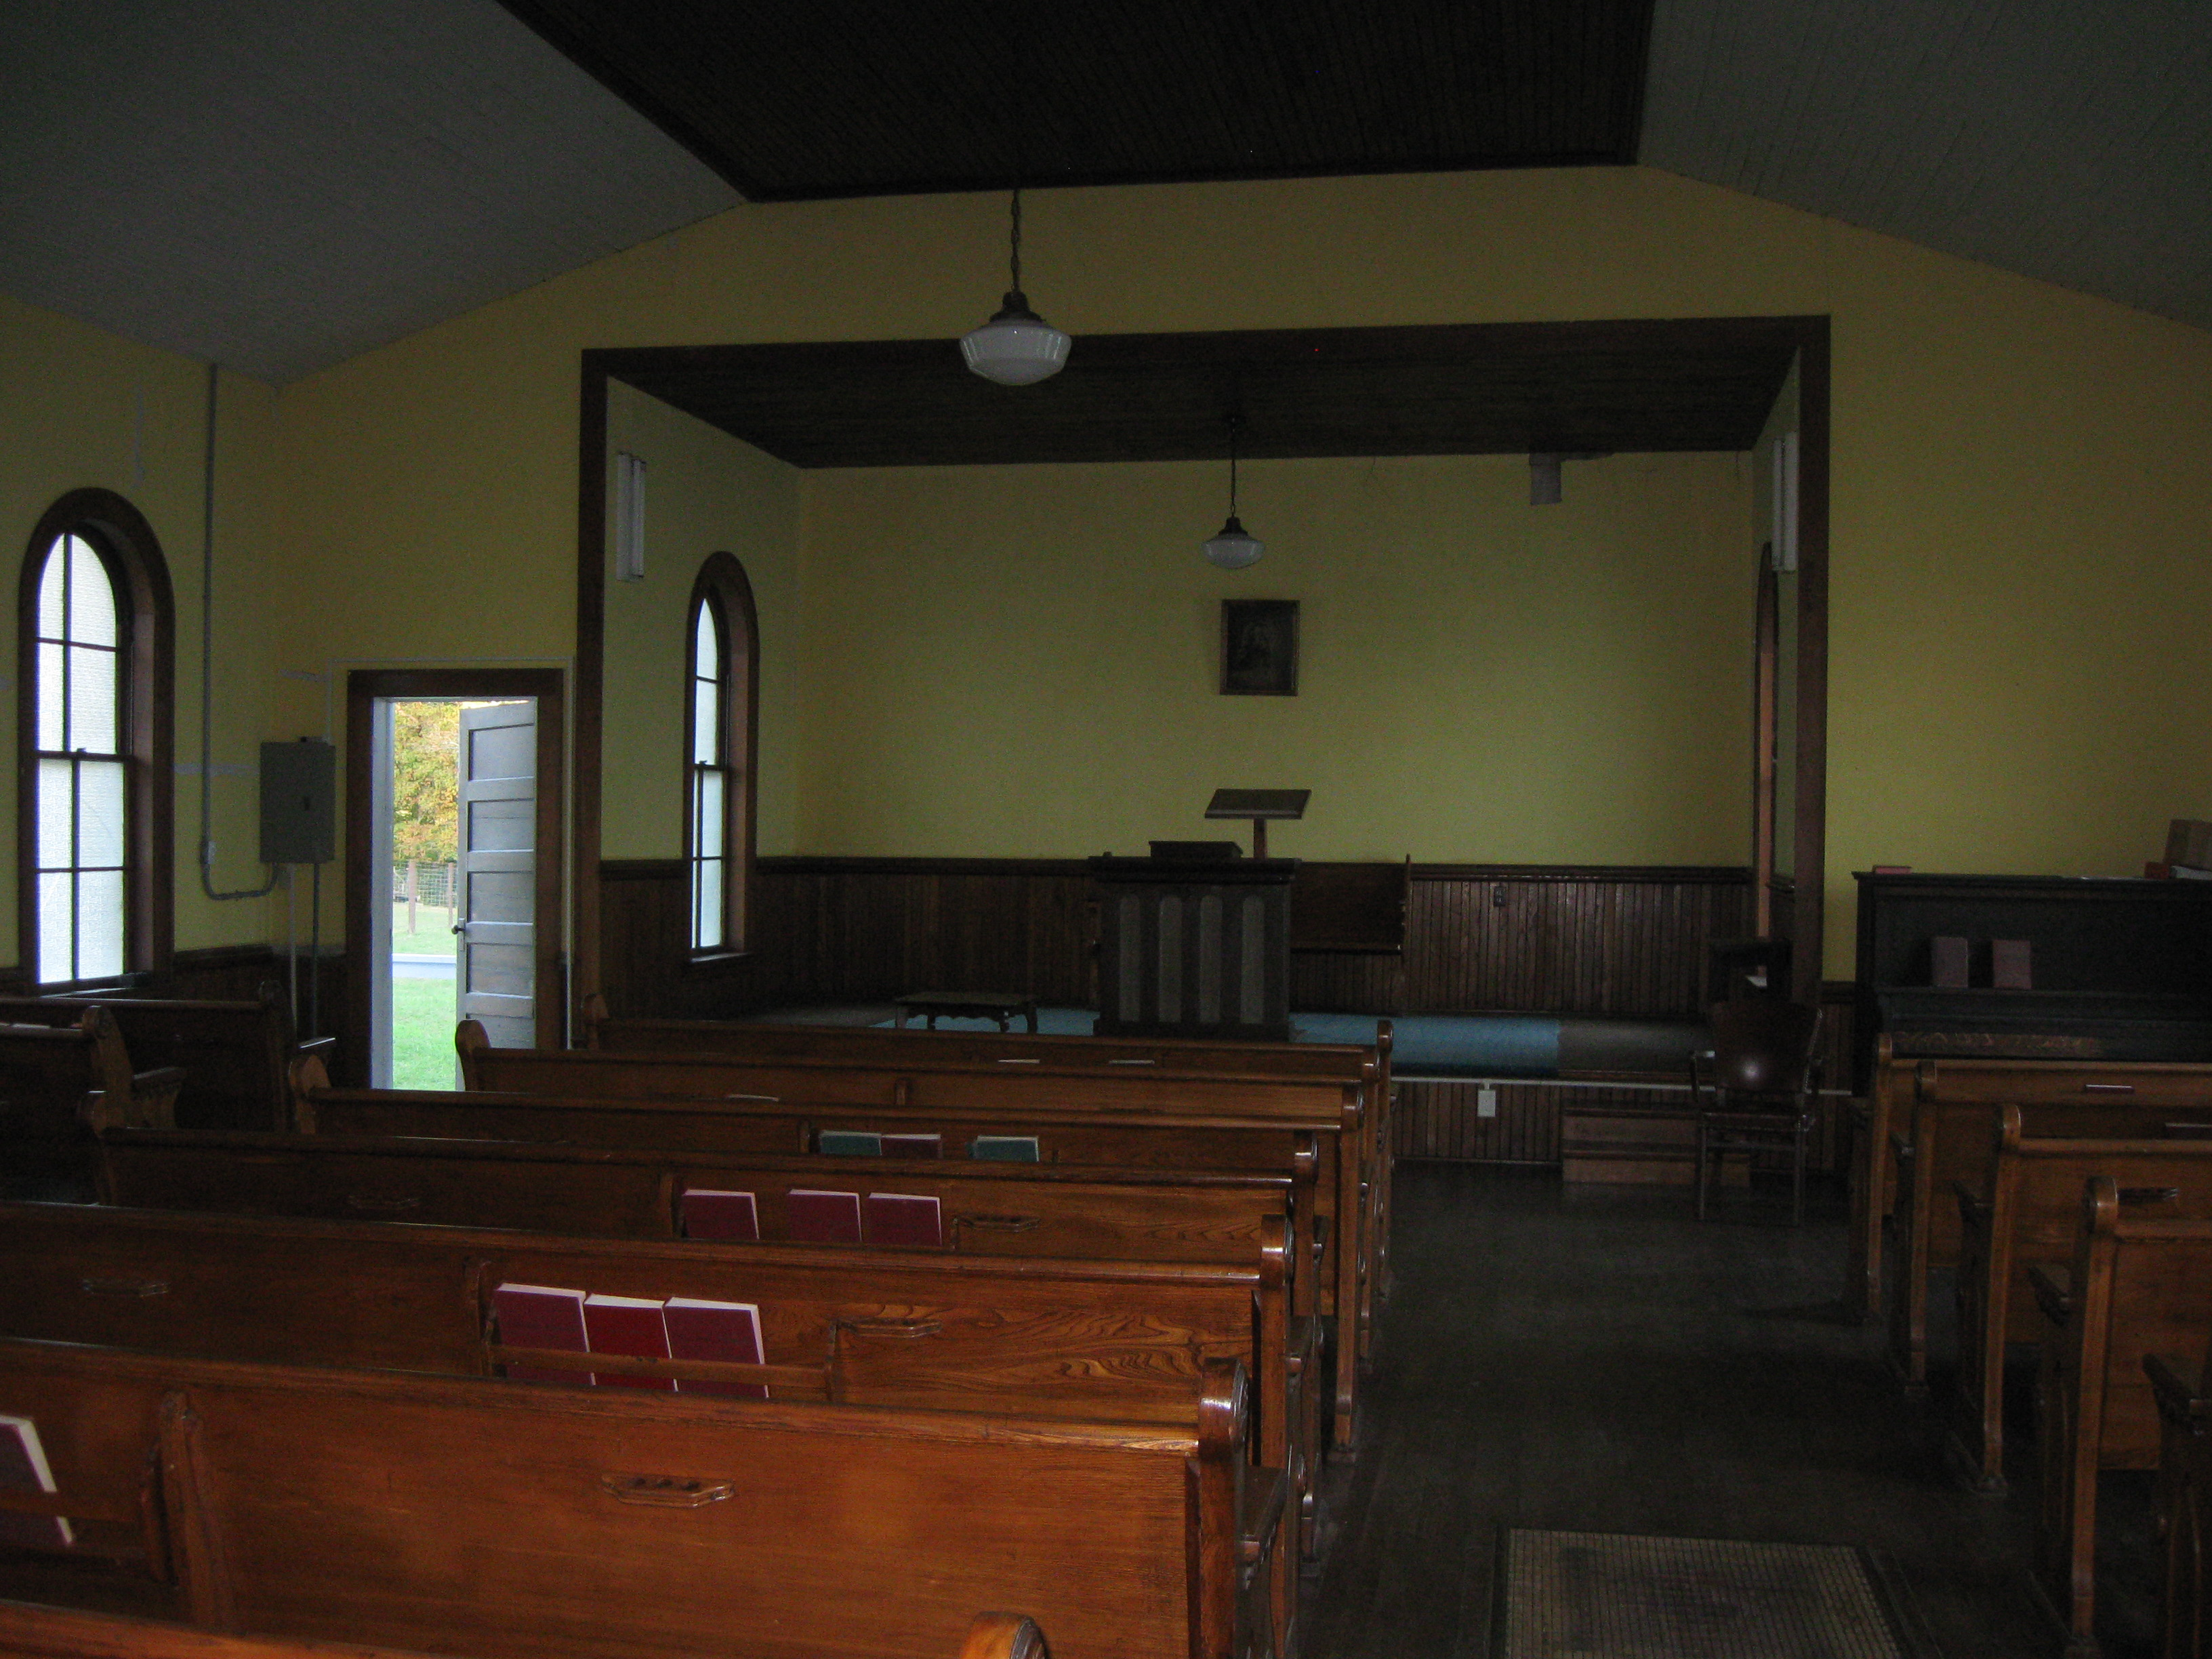 Inside the Church Building